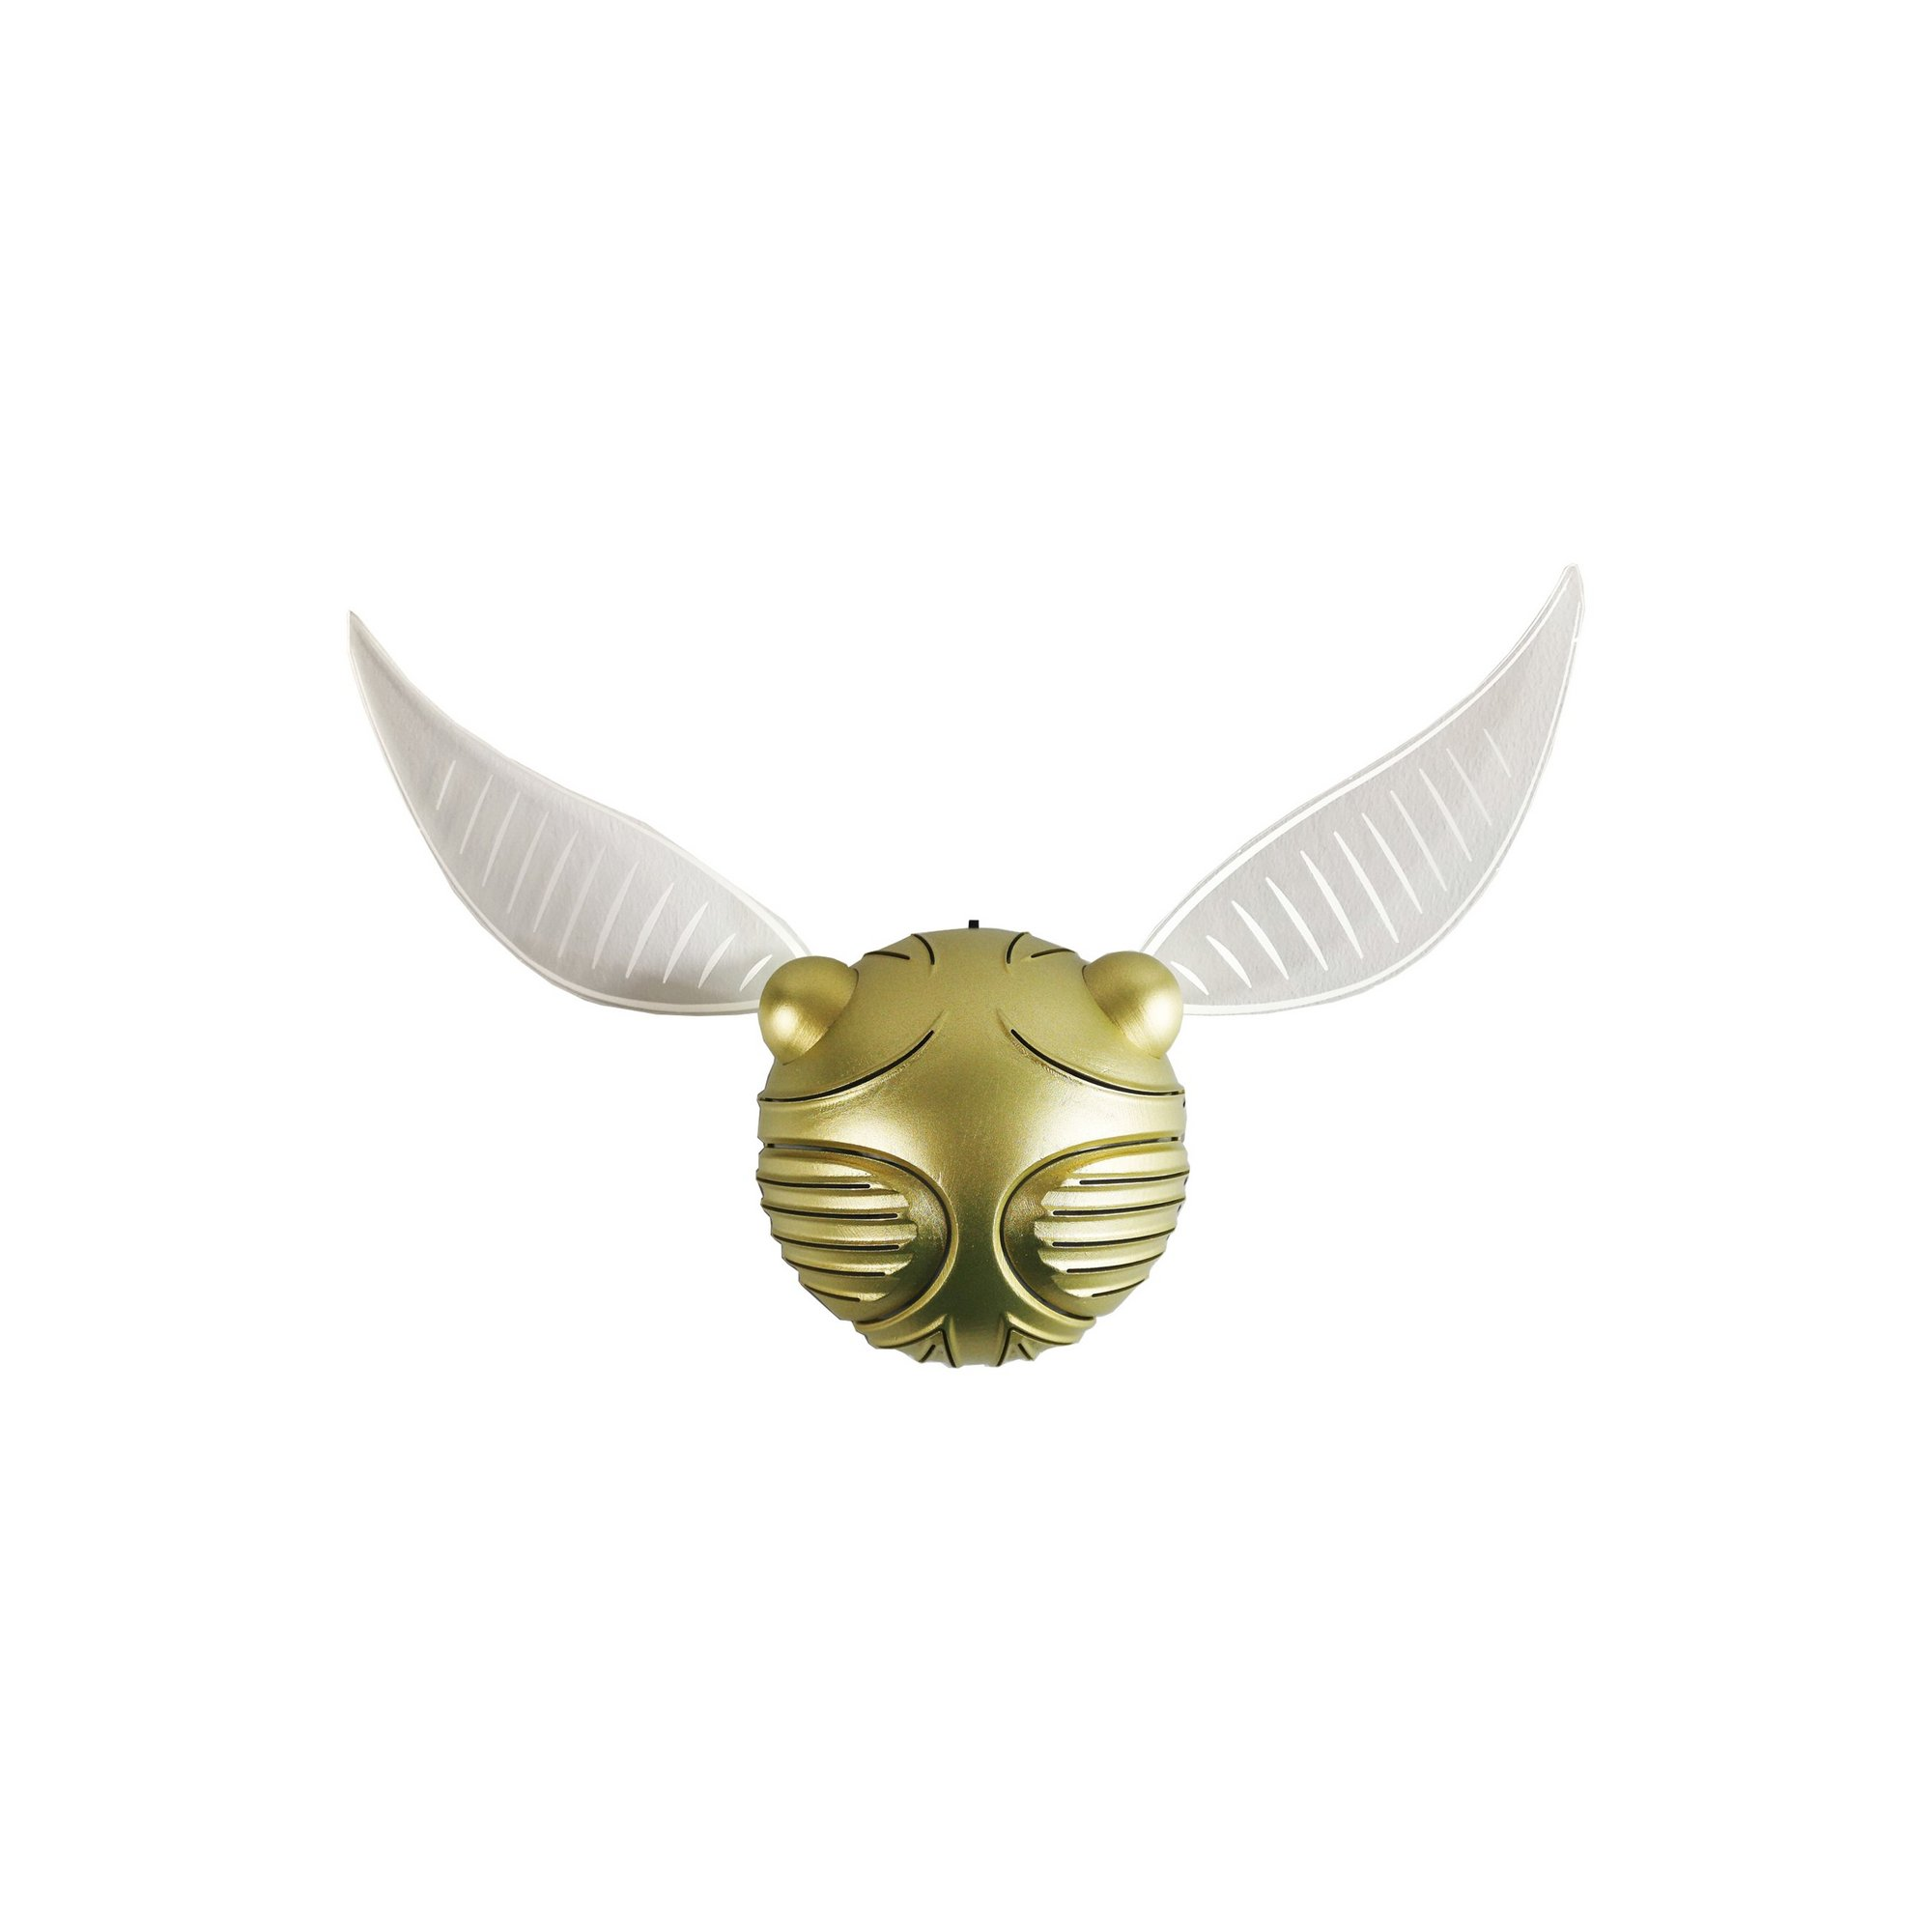 Image of Golden Snitch Harry Potter Wall Light